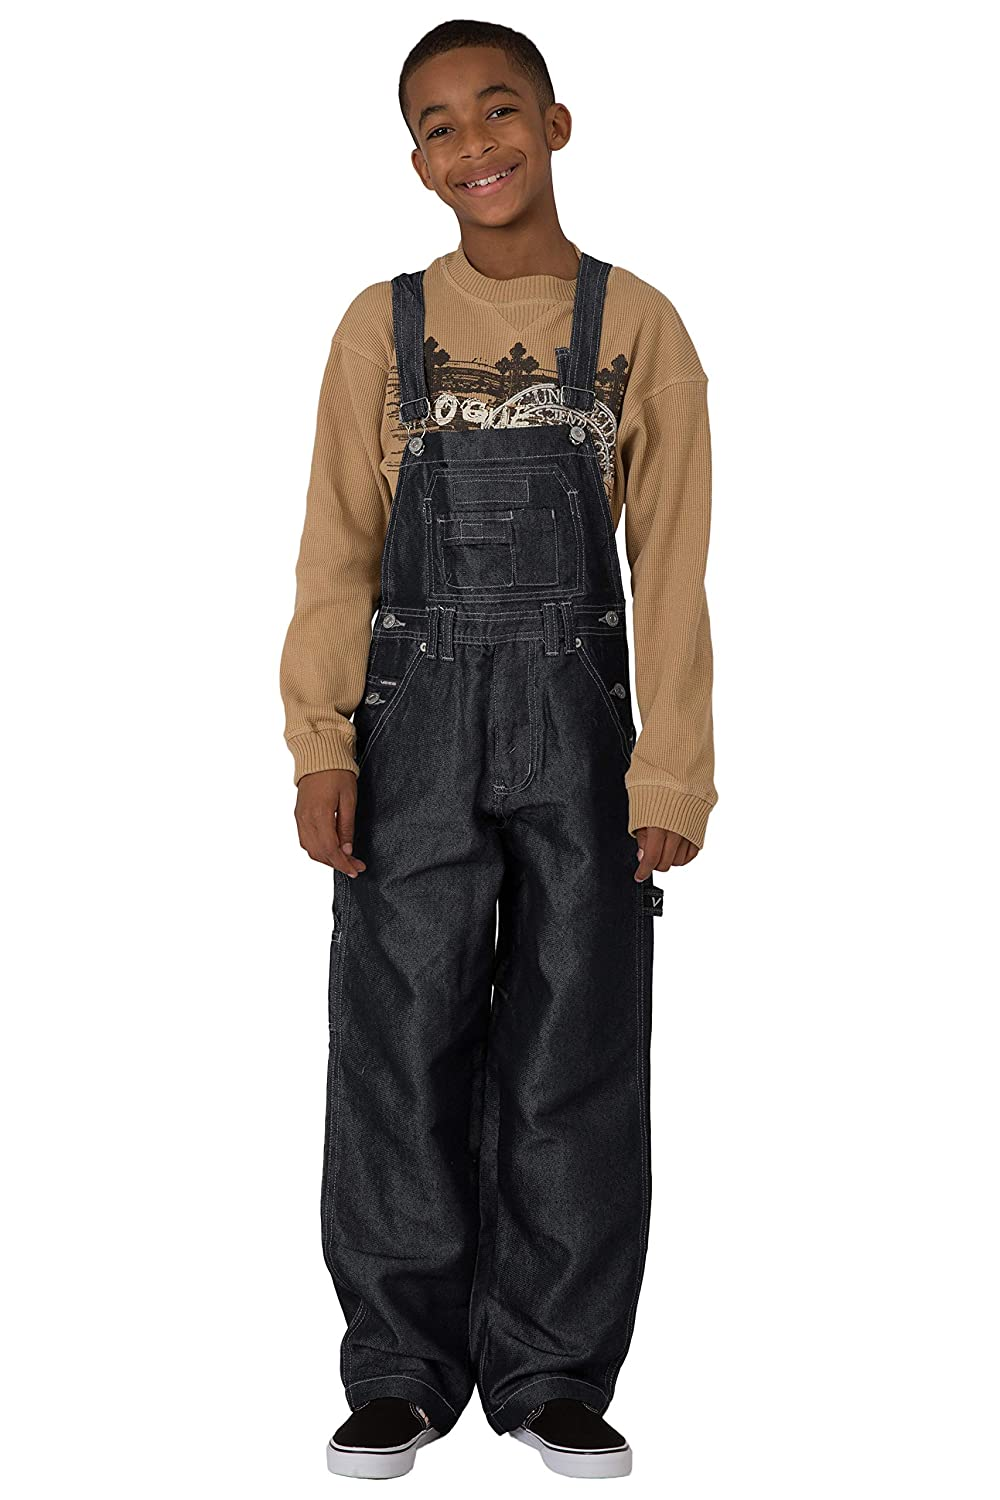 Vibes Boy's Black Shiny Denim Carpenter Overalls 207505K-BLACK